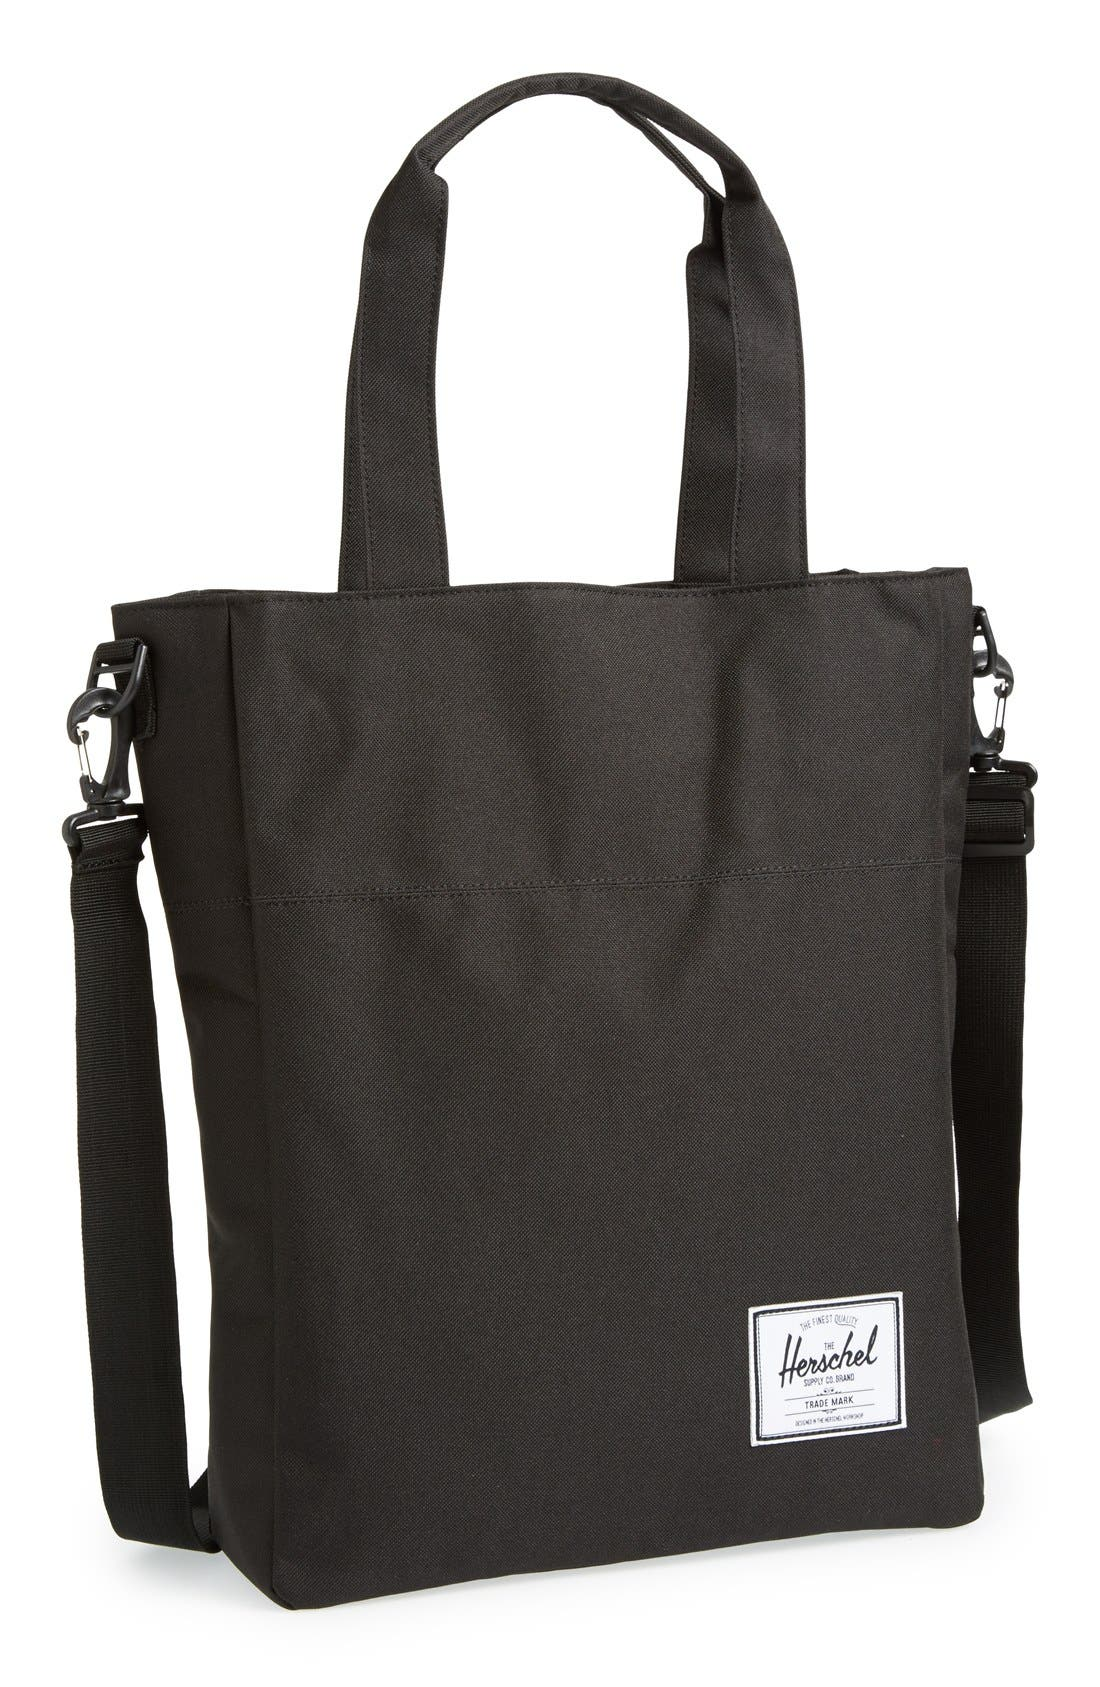 Alternate Image 1 Selected - Herschel Supply Co. 'Pier' Tote